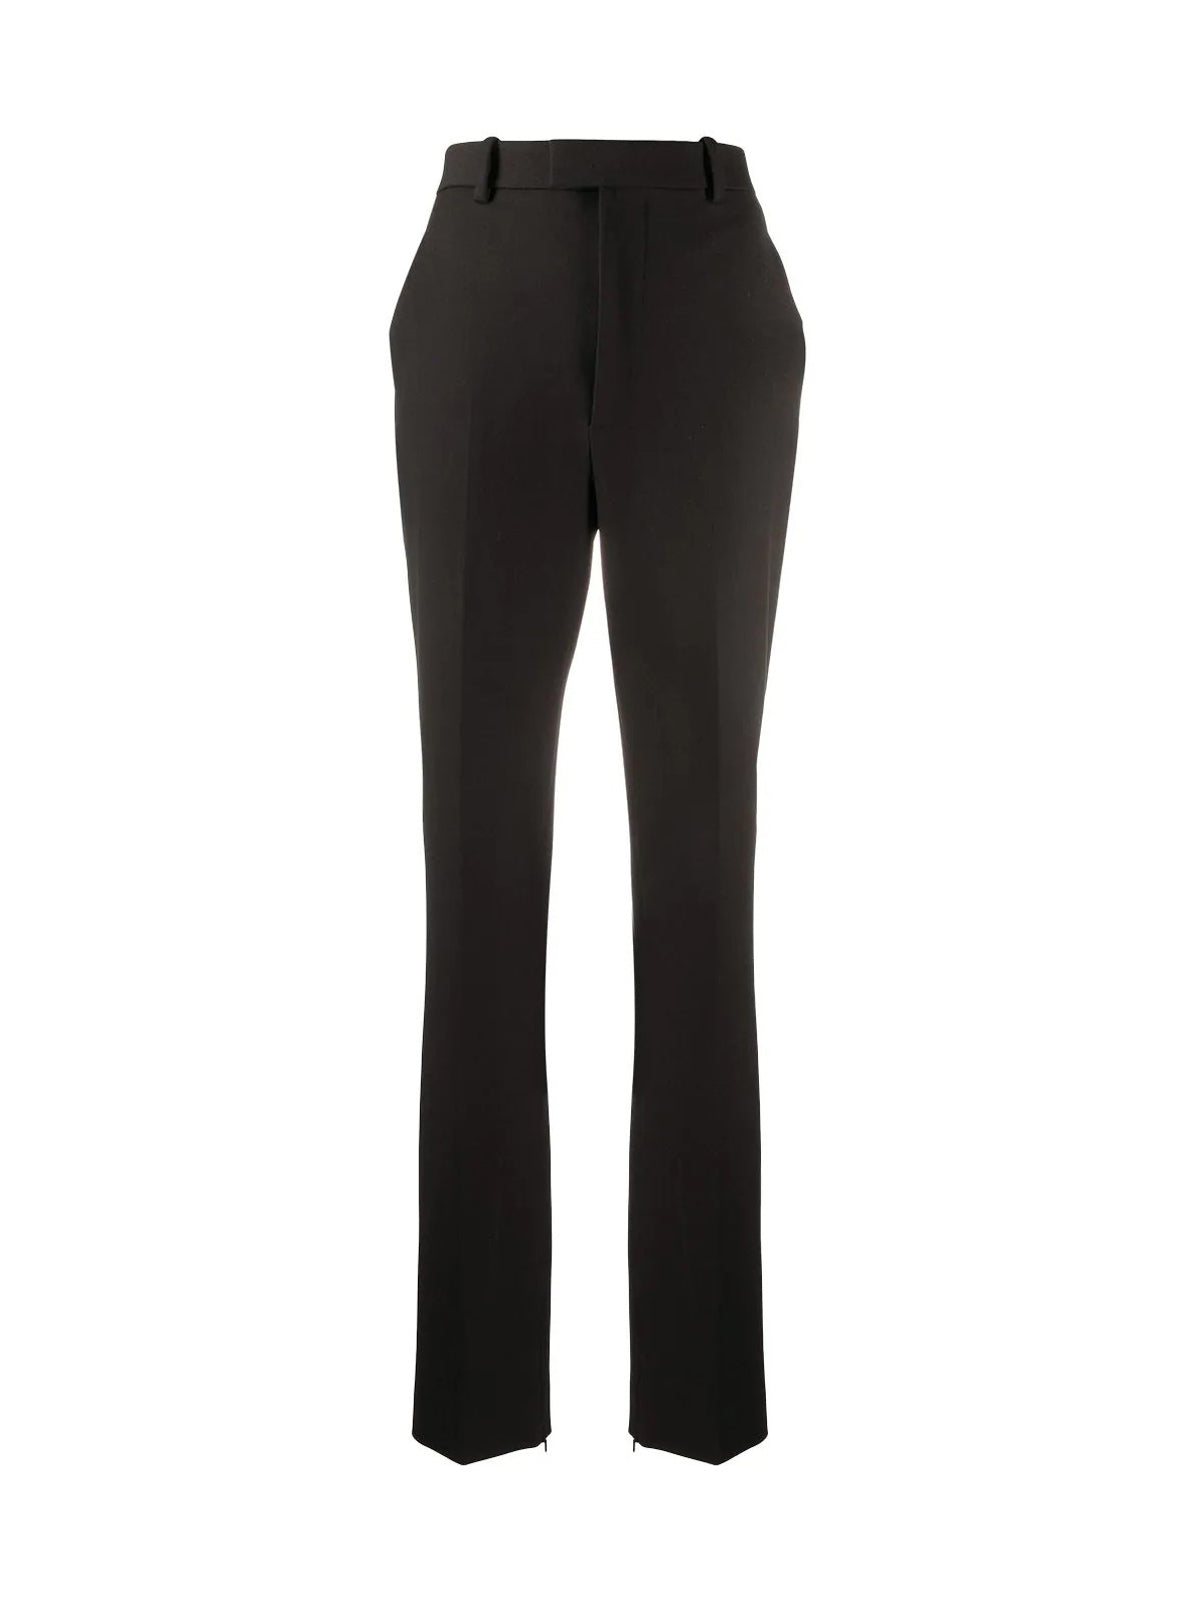 sit cuffs tailored trousers